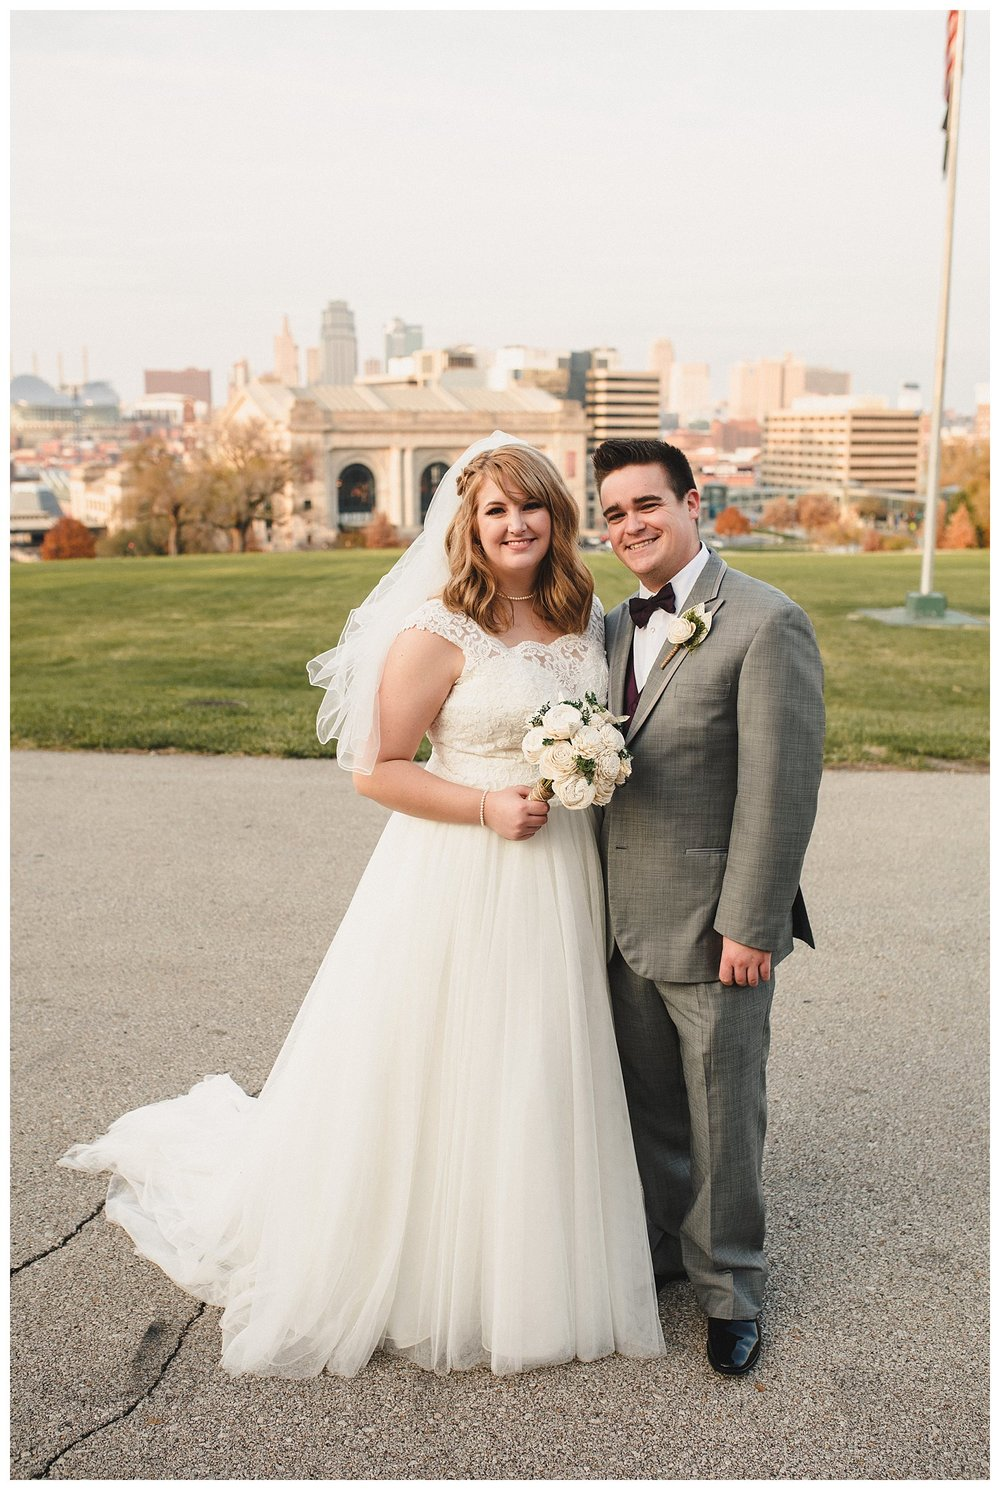 Kelsey_Diane_Photography_Loose_Mansion_Wedding_Photography_Kansas_City_Victor_Lyndsay_0369.jpg